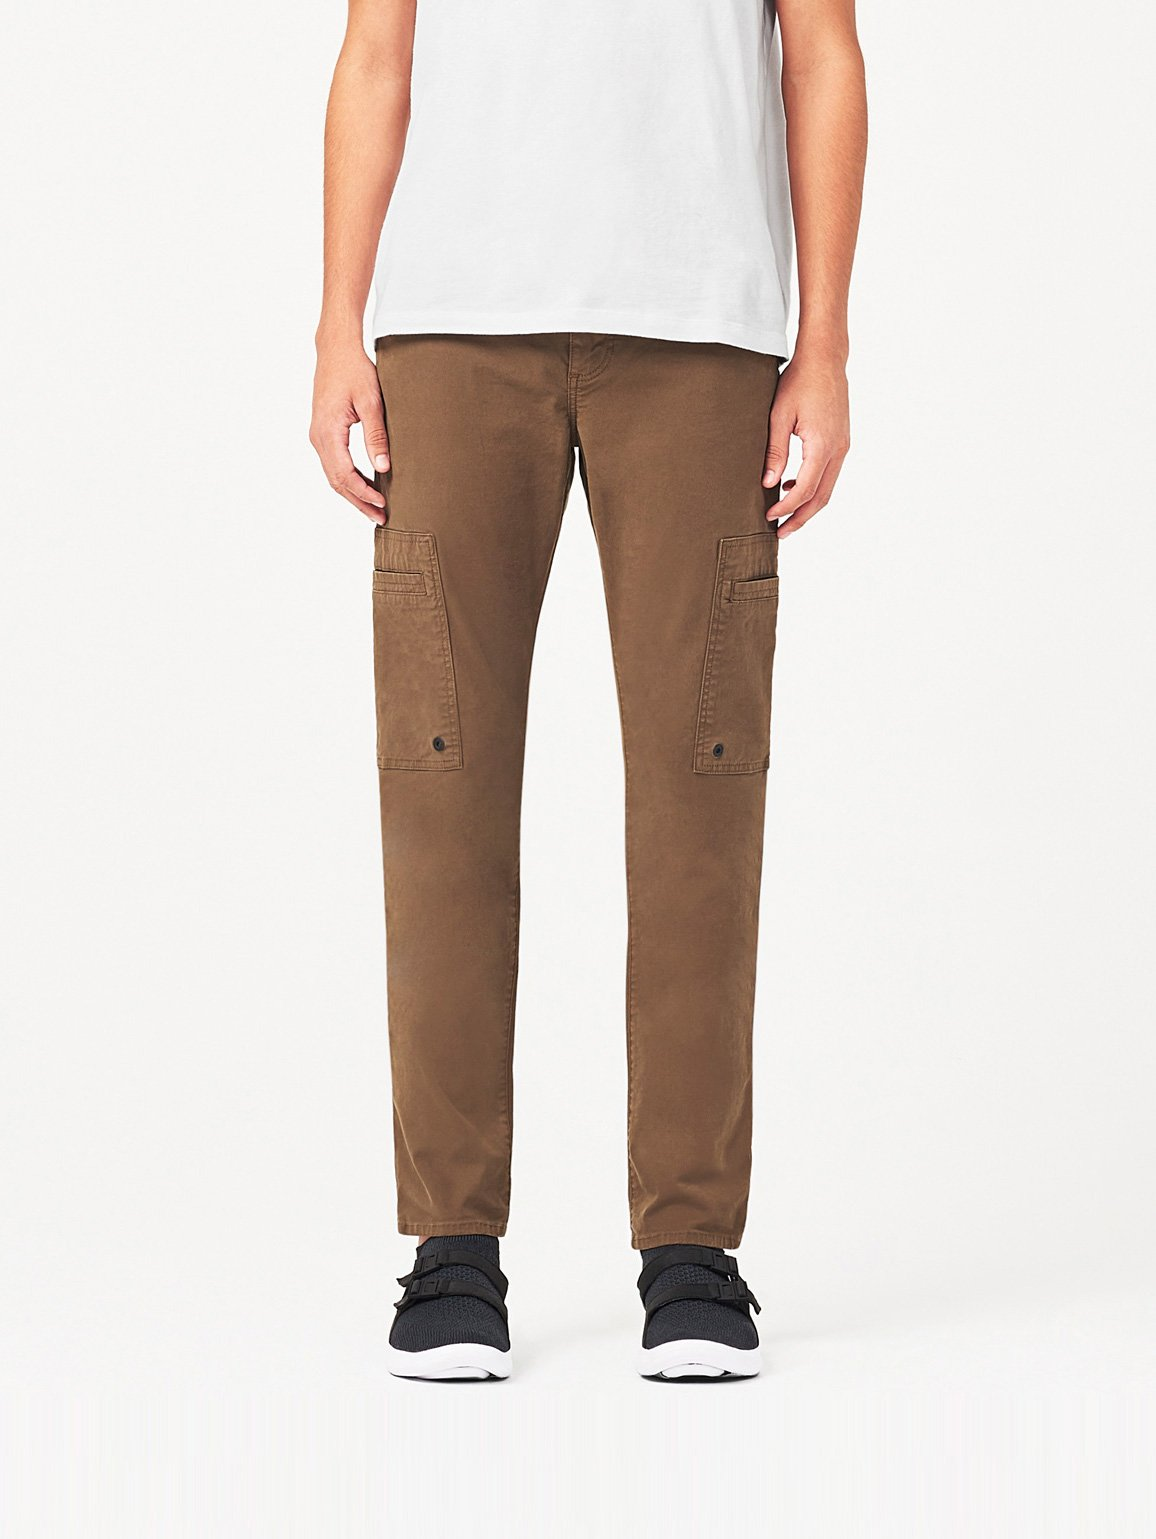 Men - Hunter Skinny Driftless - DL1961